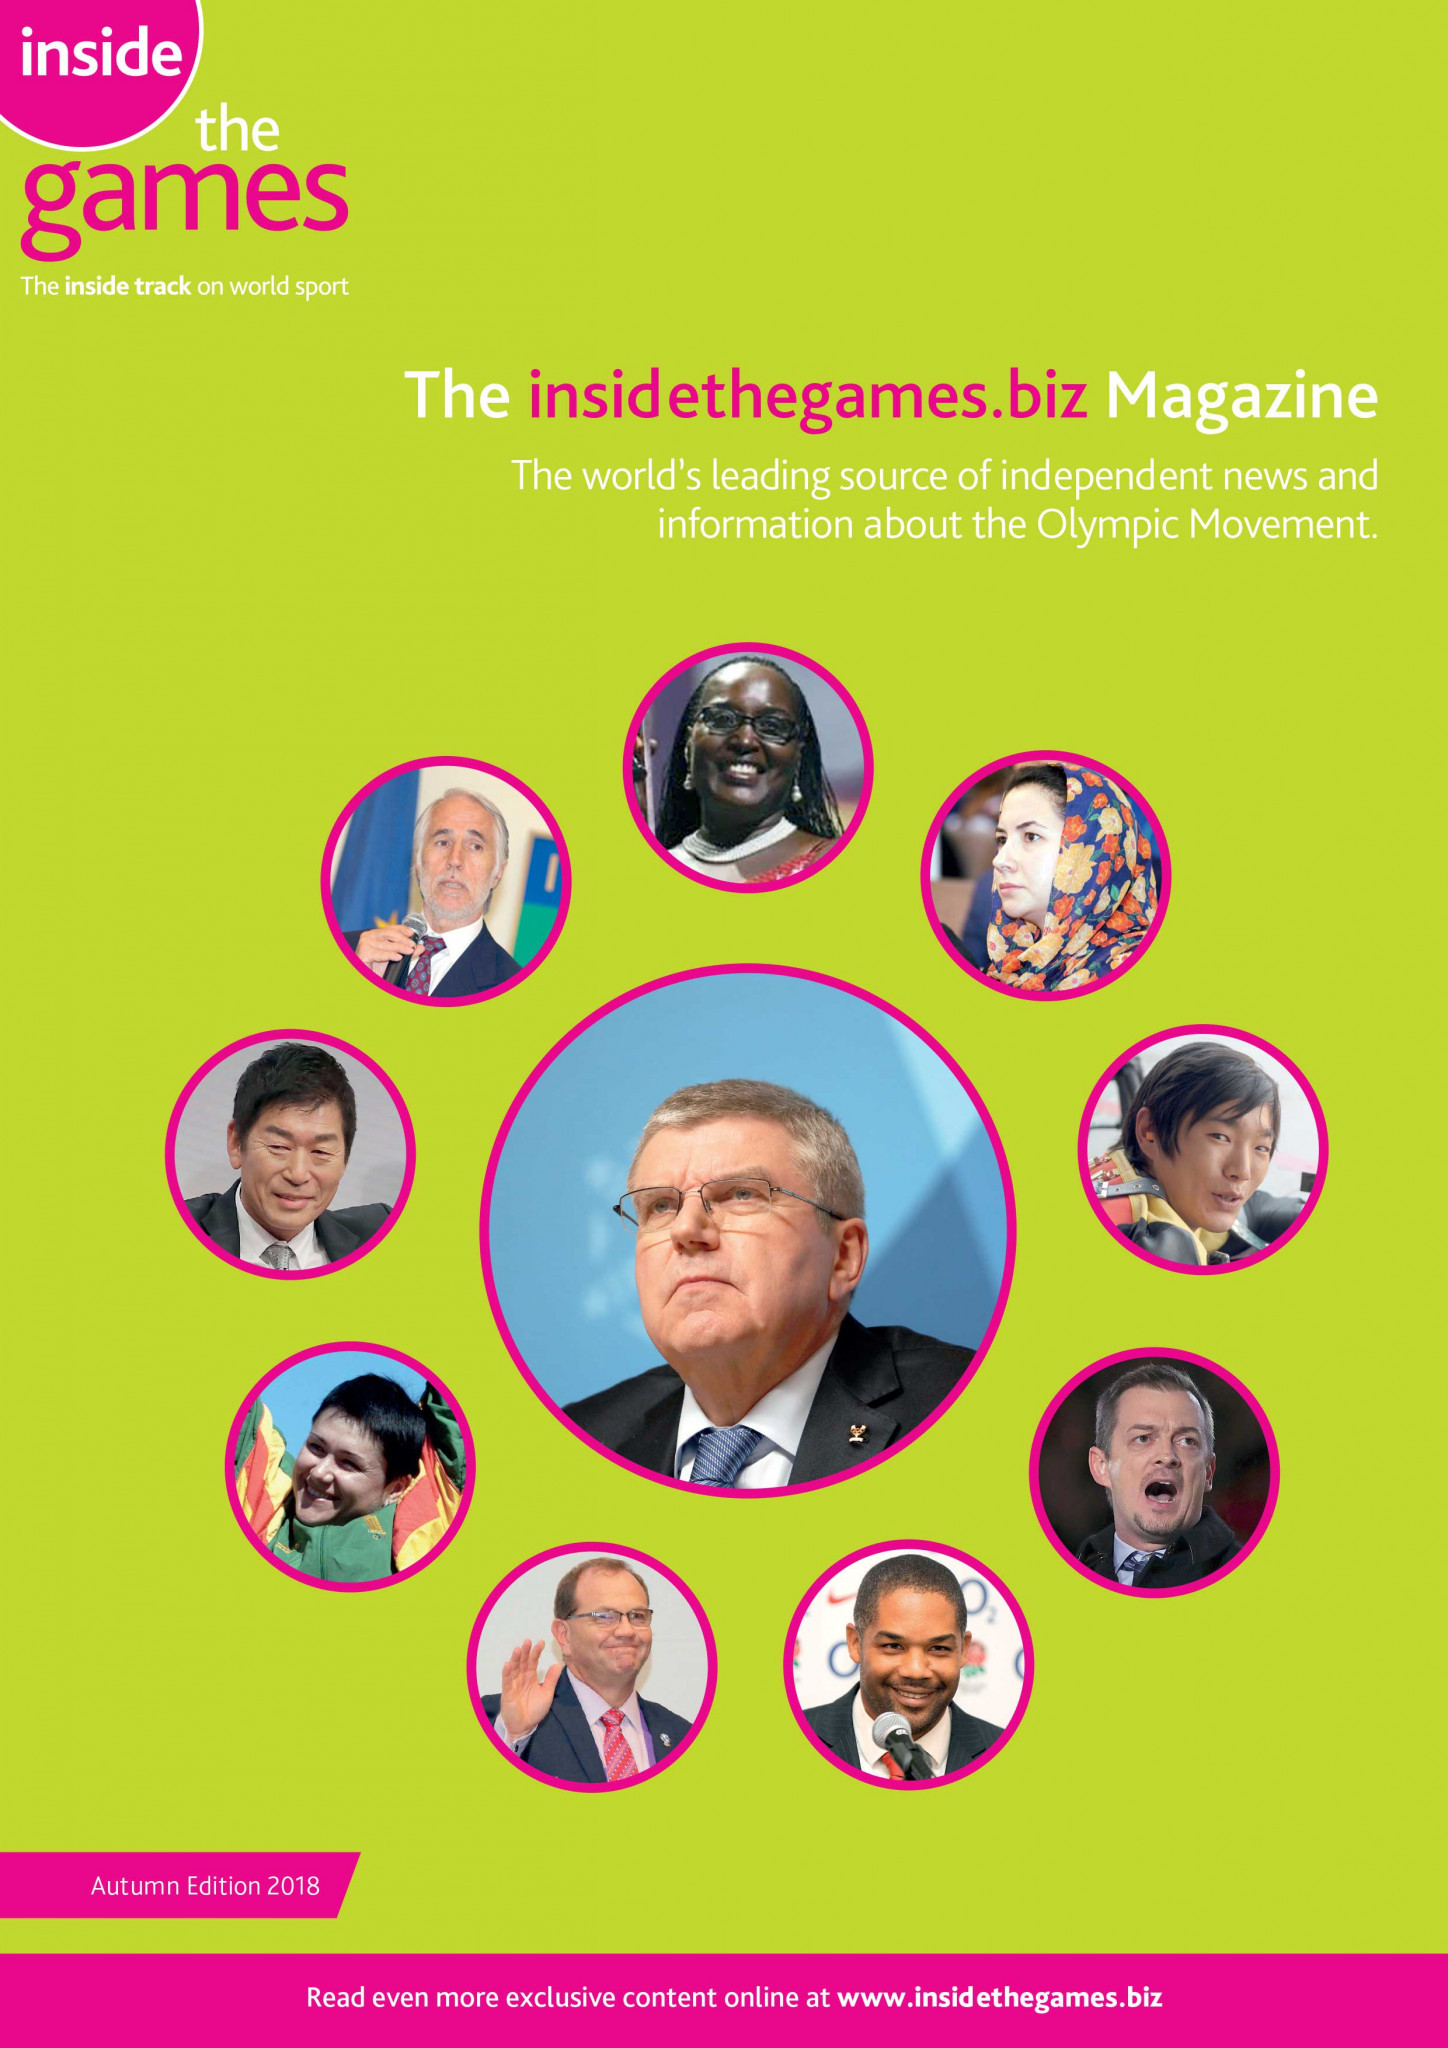 The insidethegames.biz Magazine Autumn Edition 2018